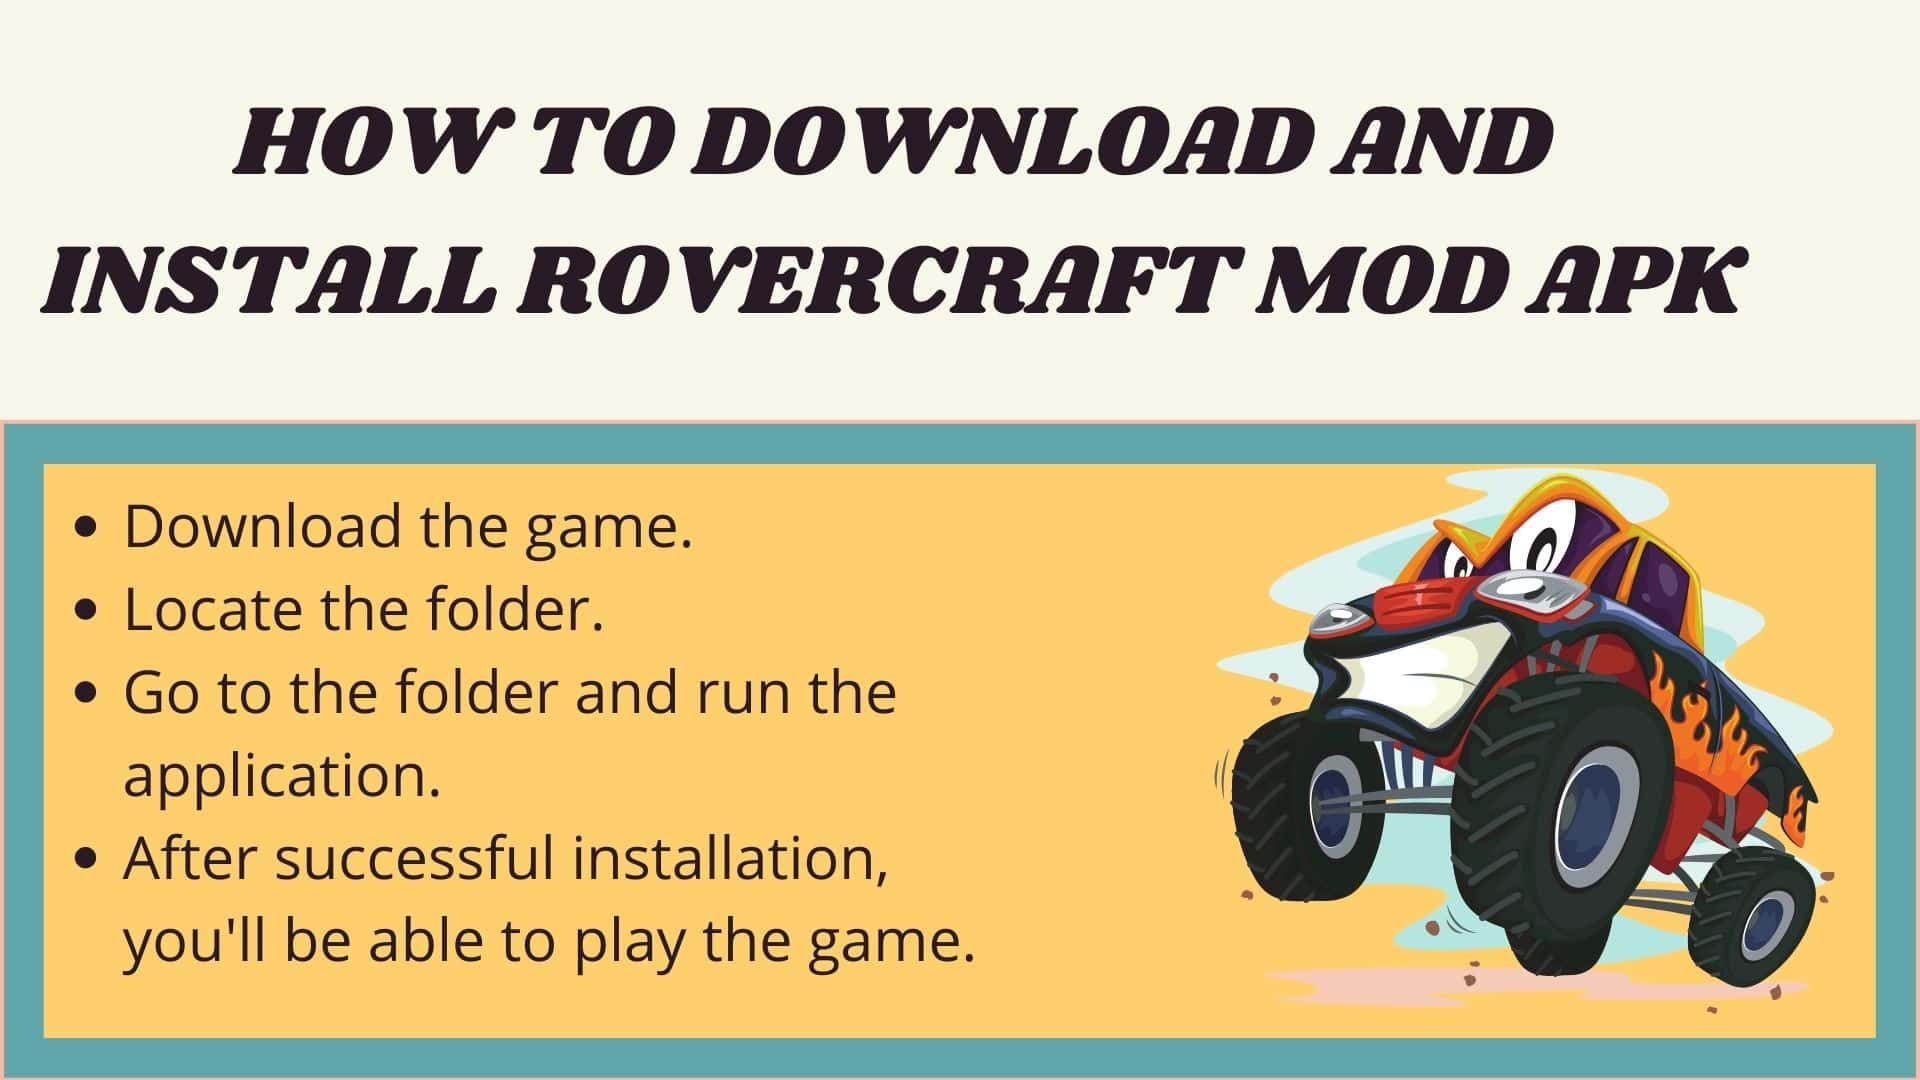 How to Download and install RoverCraft Mod apk